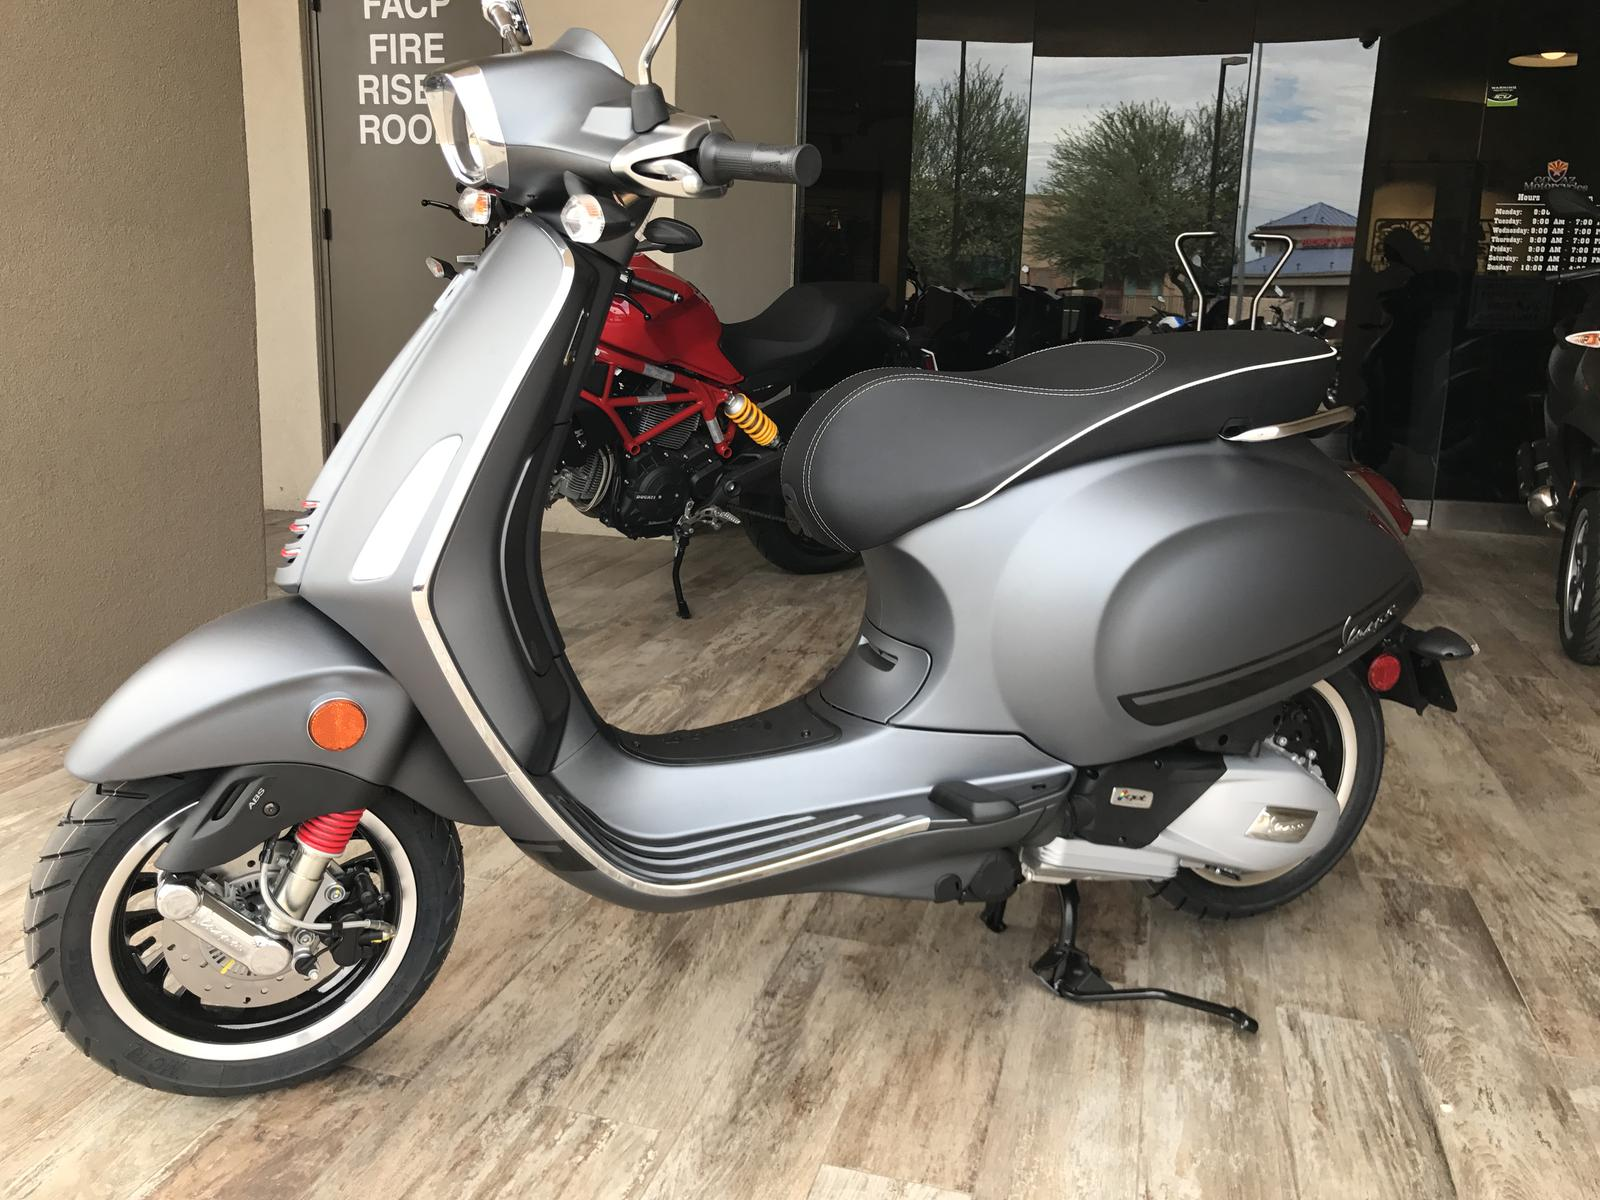 2019 Vespa 150 Sport For In Peoria Az Go Motorcycles 623 322 6700